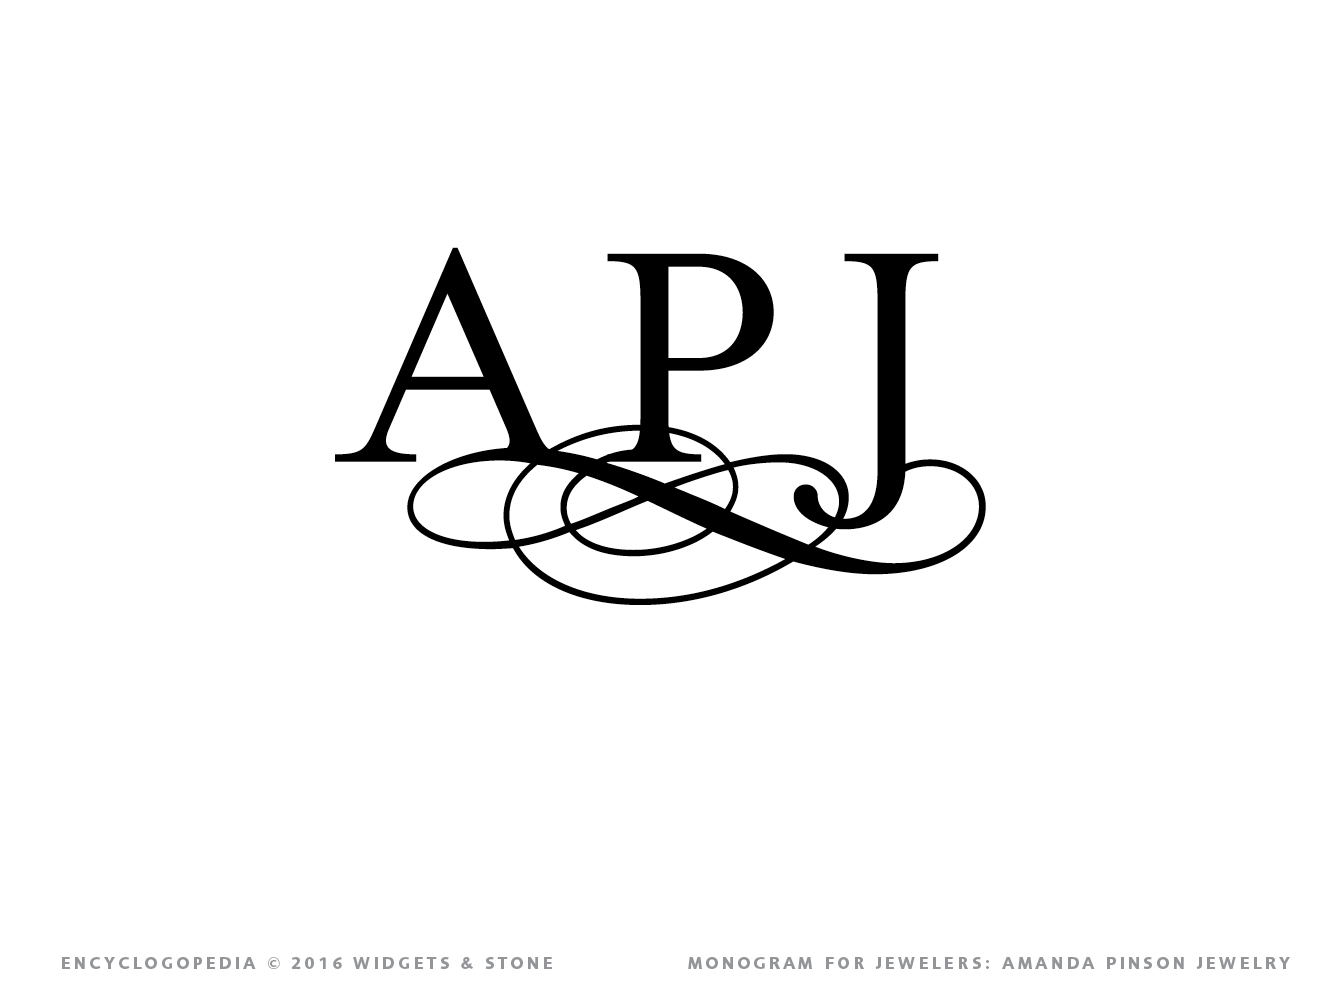 Copy of APJ typographic logo graphic design